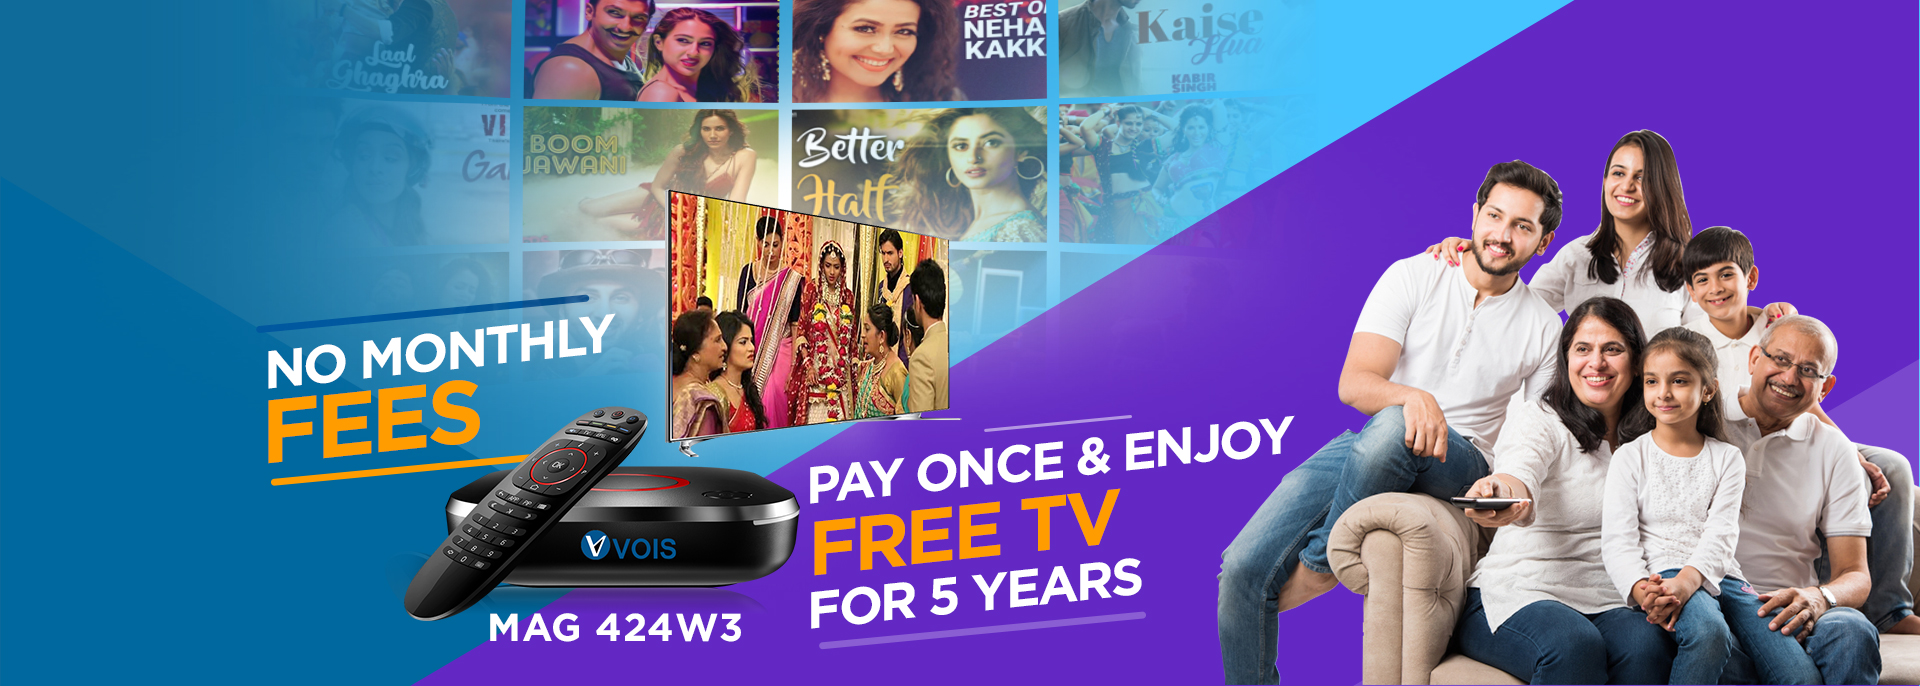 NO Monthly fees,pay once & Enjoy Tv for 5 years